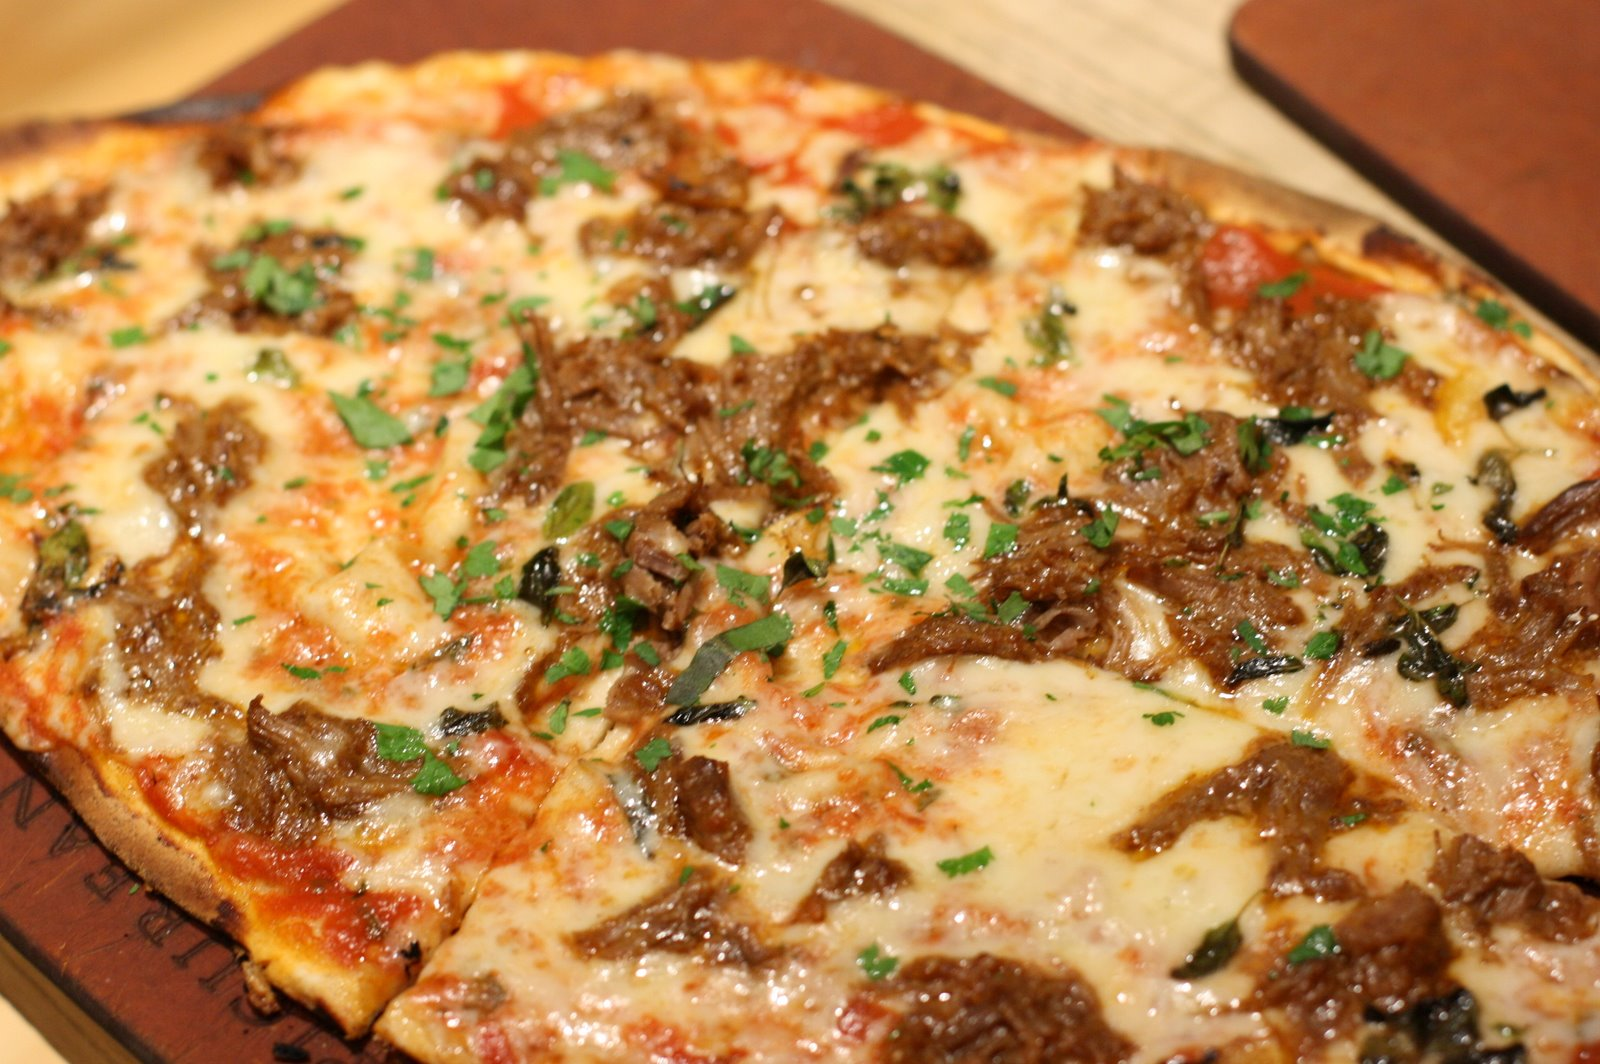 Braised-Lamb-Pizza-783153.jpg